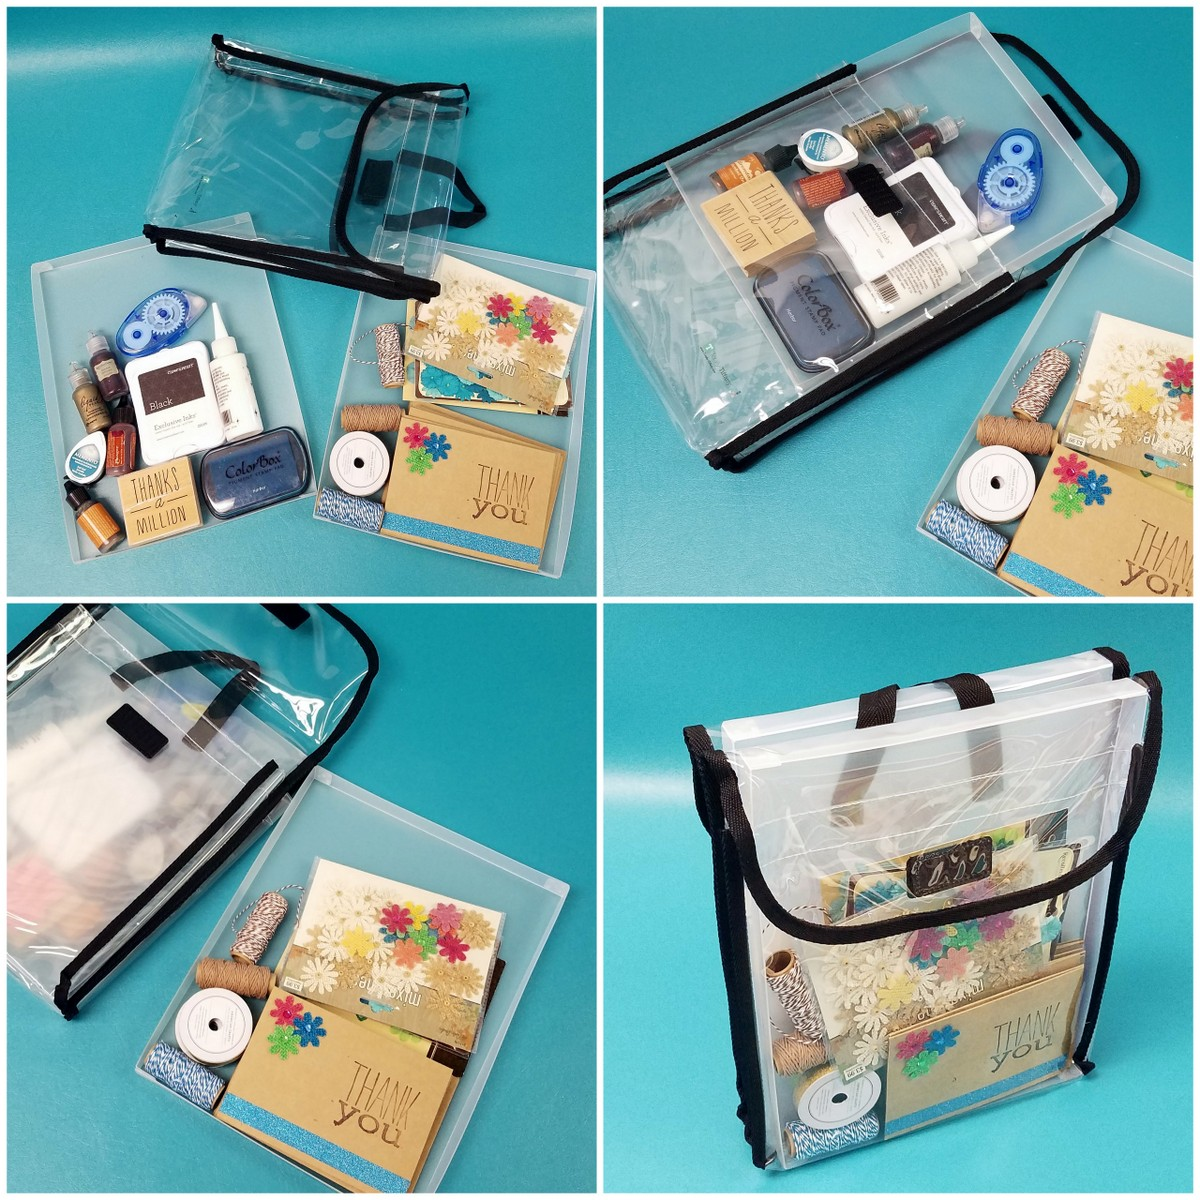 Card making project organizer